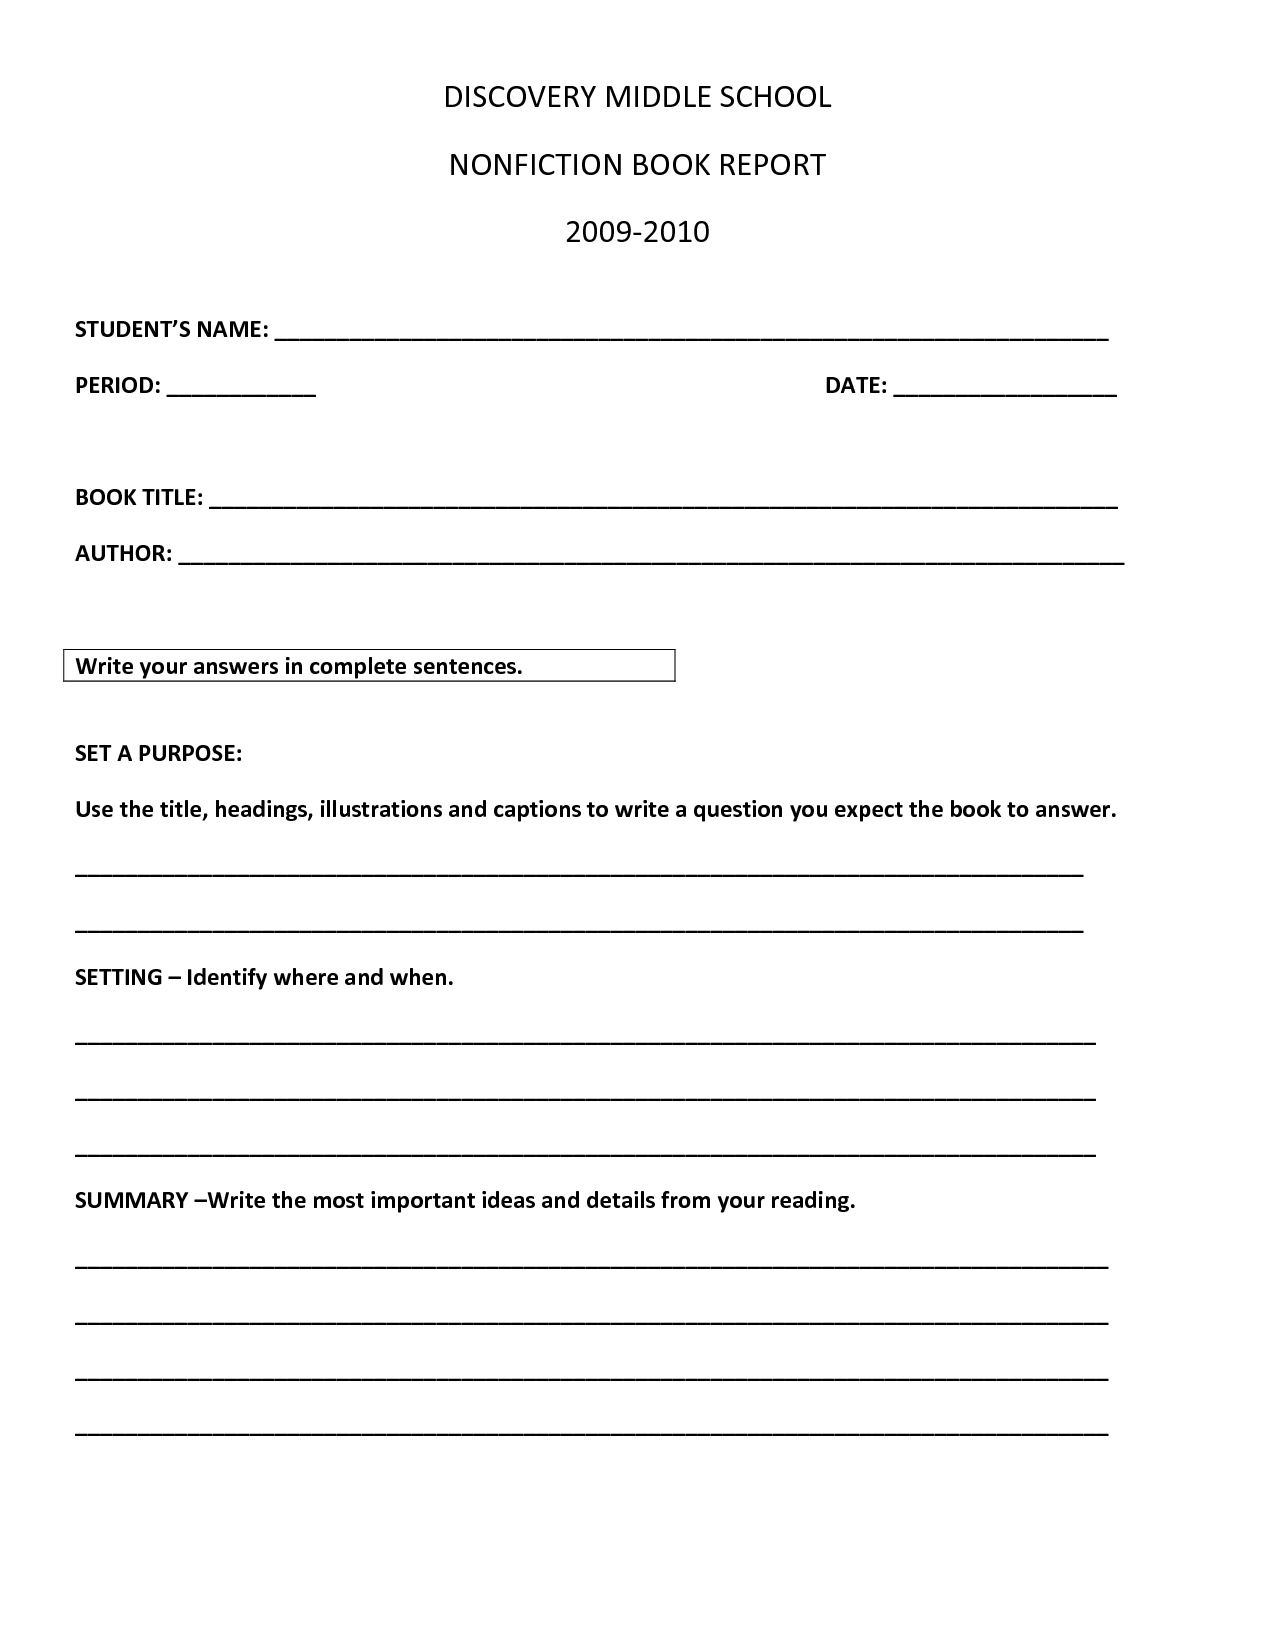 Non Fiction Book Report Template Middle School | How To Intended For Book Report Template Middle School